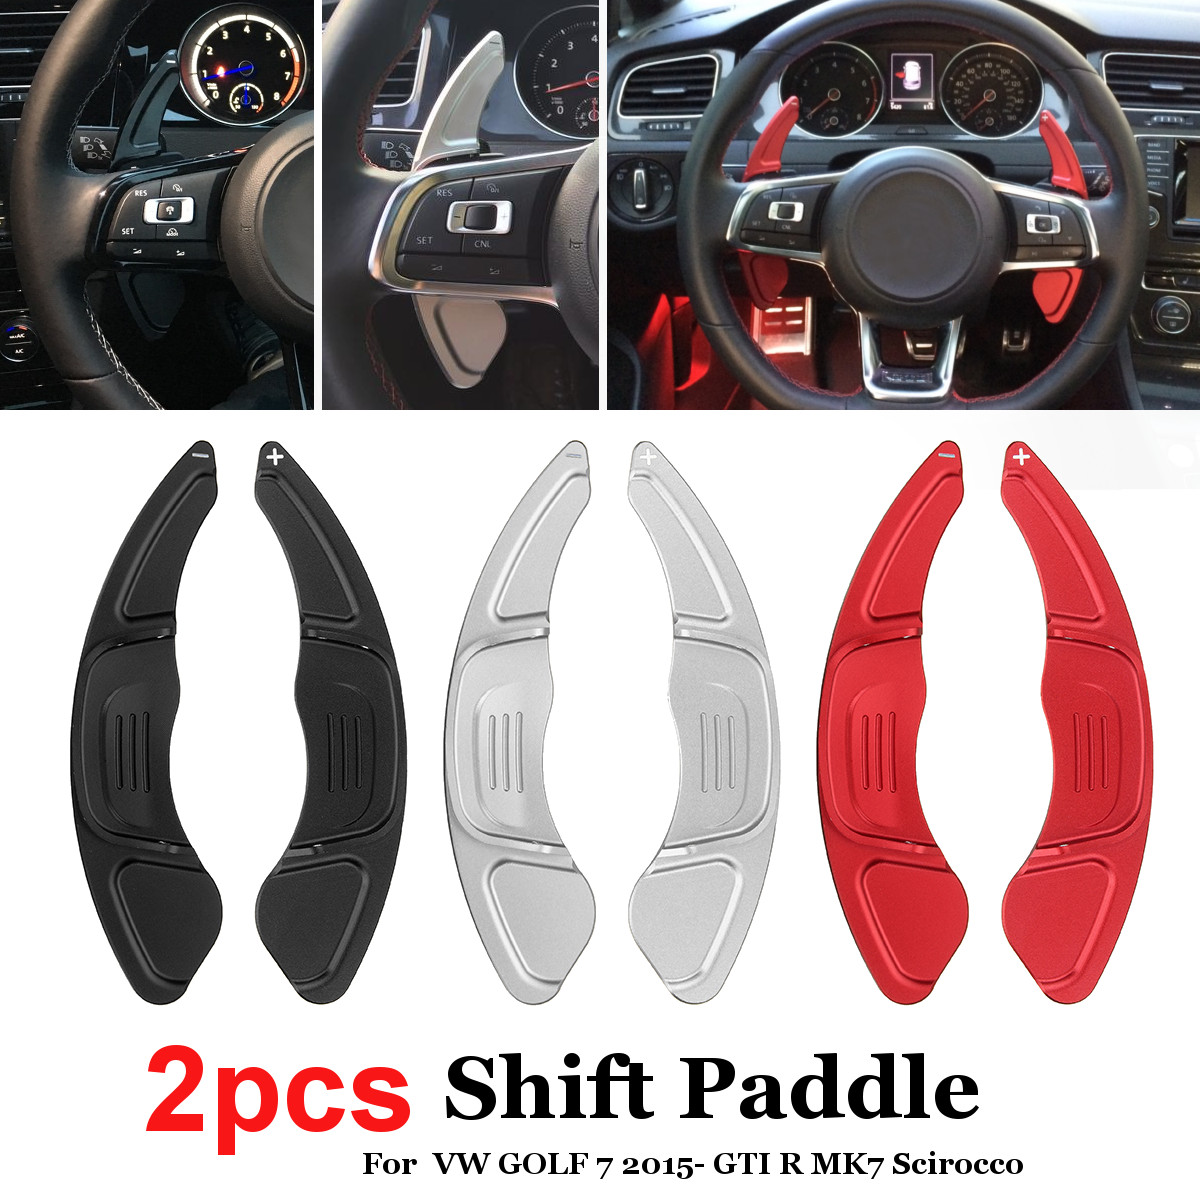 Pair Car Aluminum Steering Wheel Shift Paddle Shift for Volkswagen VW GOLF 7 2015- GTI R MK7 Scirocco Car Styling 4pcs car styling r logo car wheel tire valves caps for vw volkswagen scirocco cc golf 7 golf 6 mk6 polo gti tiguan accessories